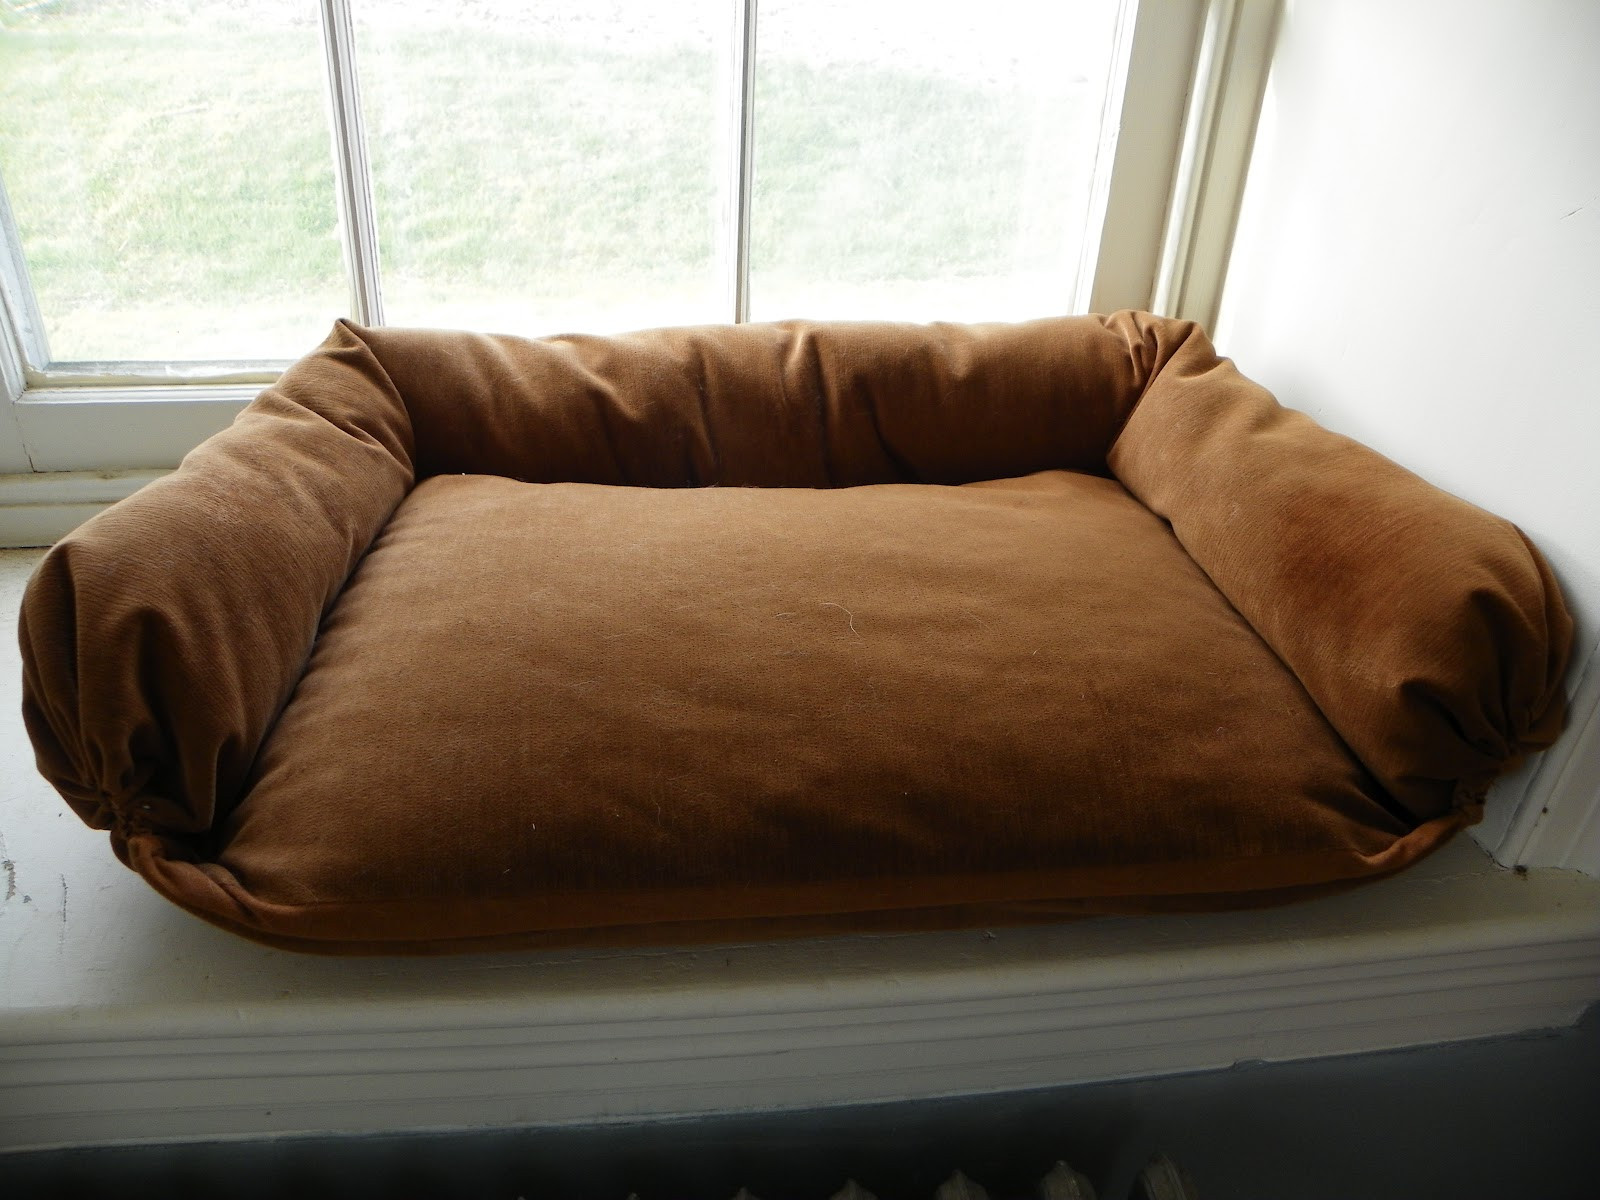 Best ideas about DIY Dog Bed For Large Dogs . Save or Pin AllyLynn DIY Dog Bed Now.